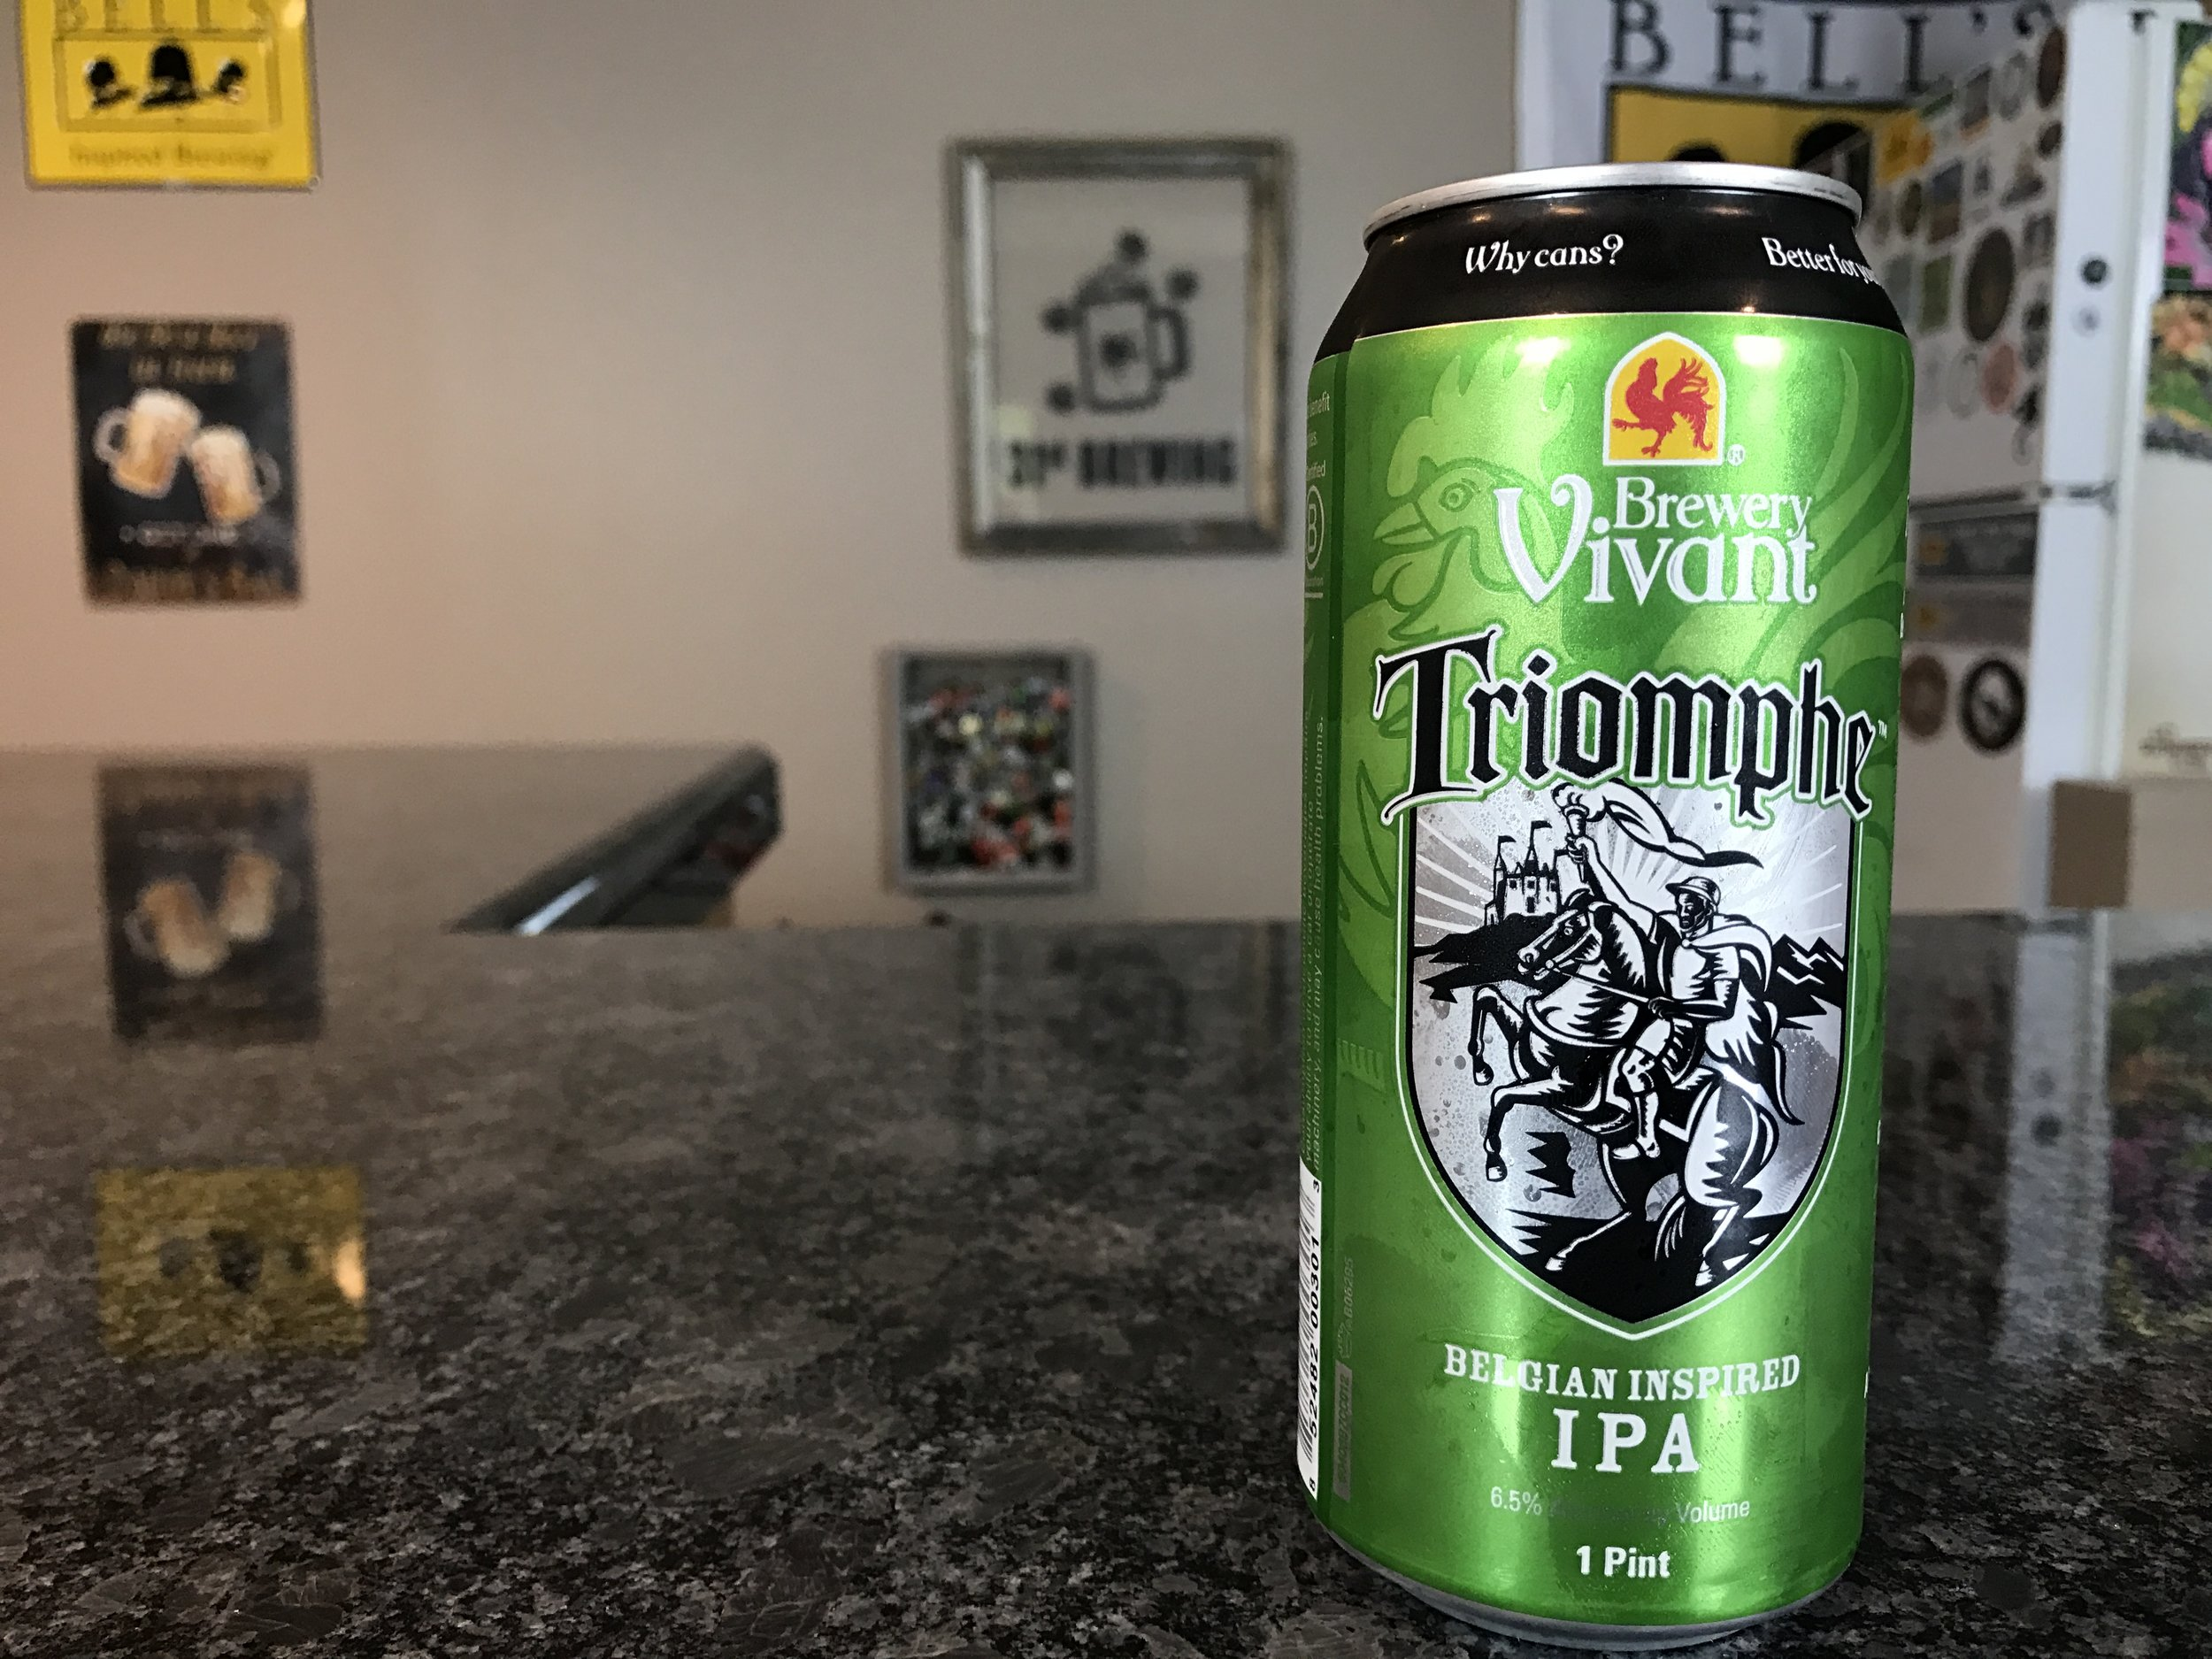 TRIOMPHE 6.5% ABV 47 IBUS - Want to see the Video review? Click on the image.